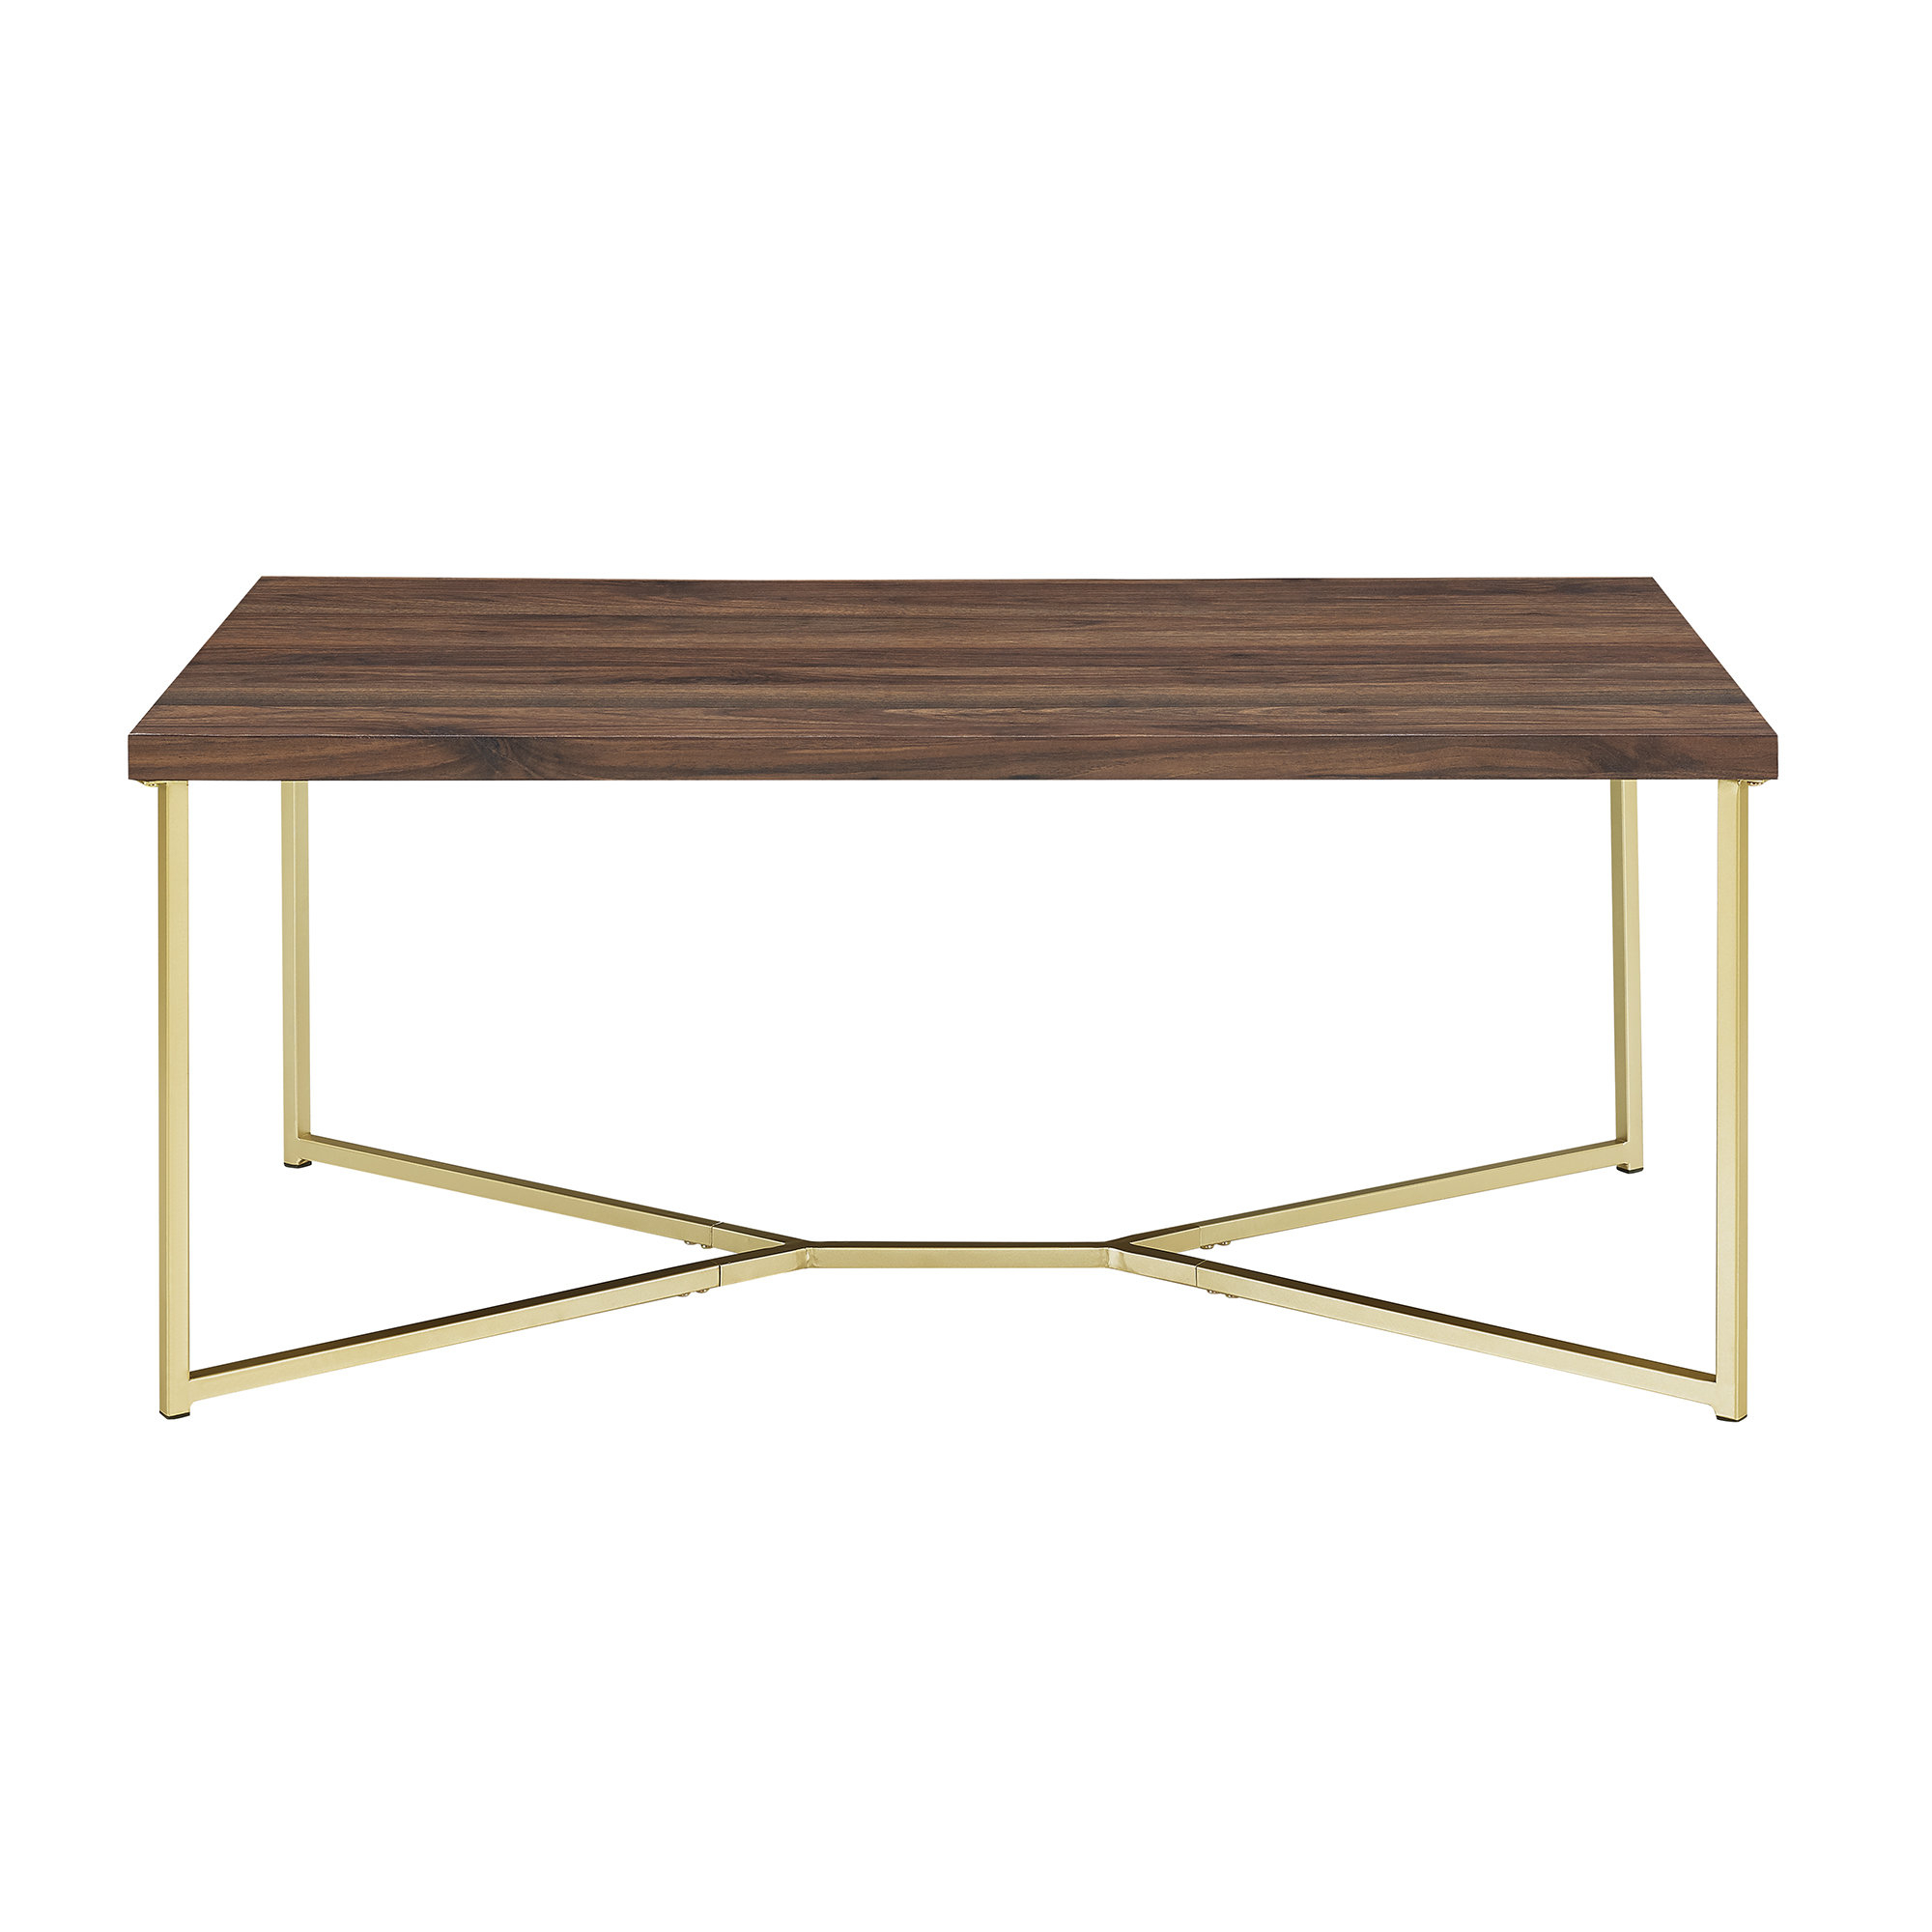 Orren Ellis | Allmodern Inside Layered Wood Small Square Console Tables (View 18 of 20)